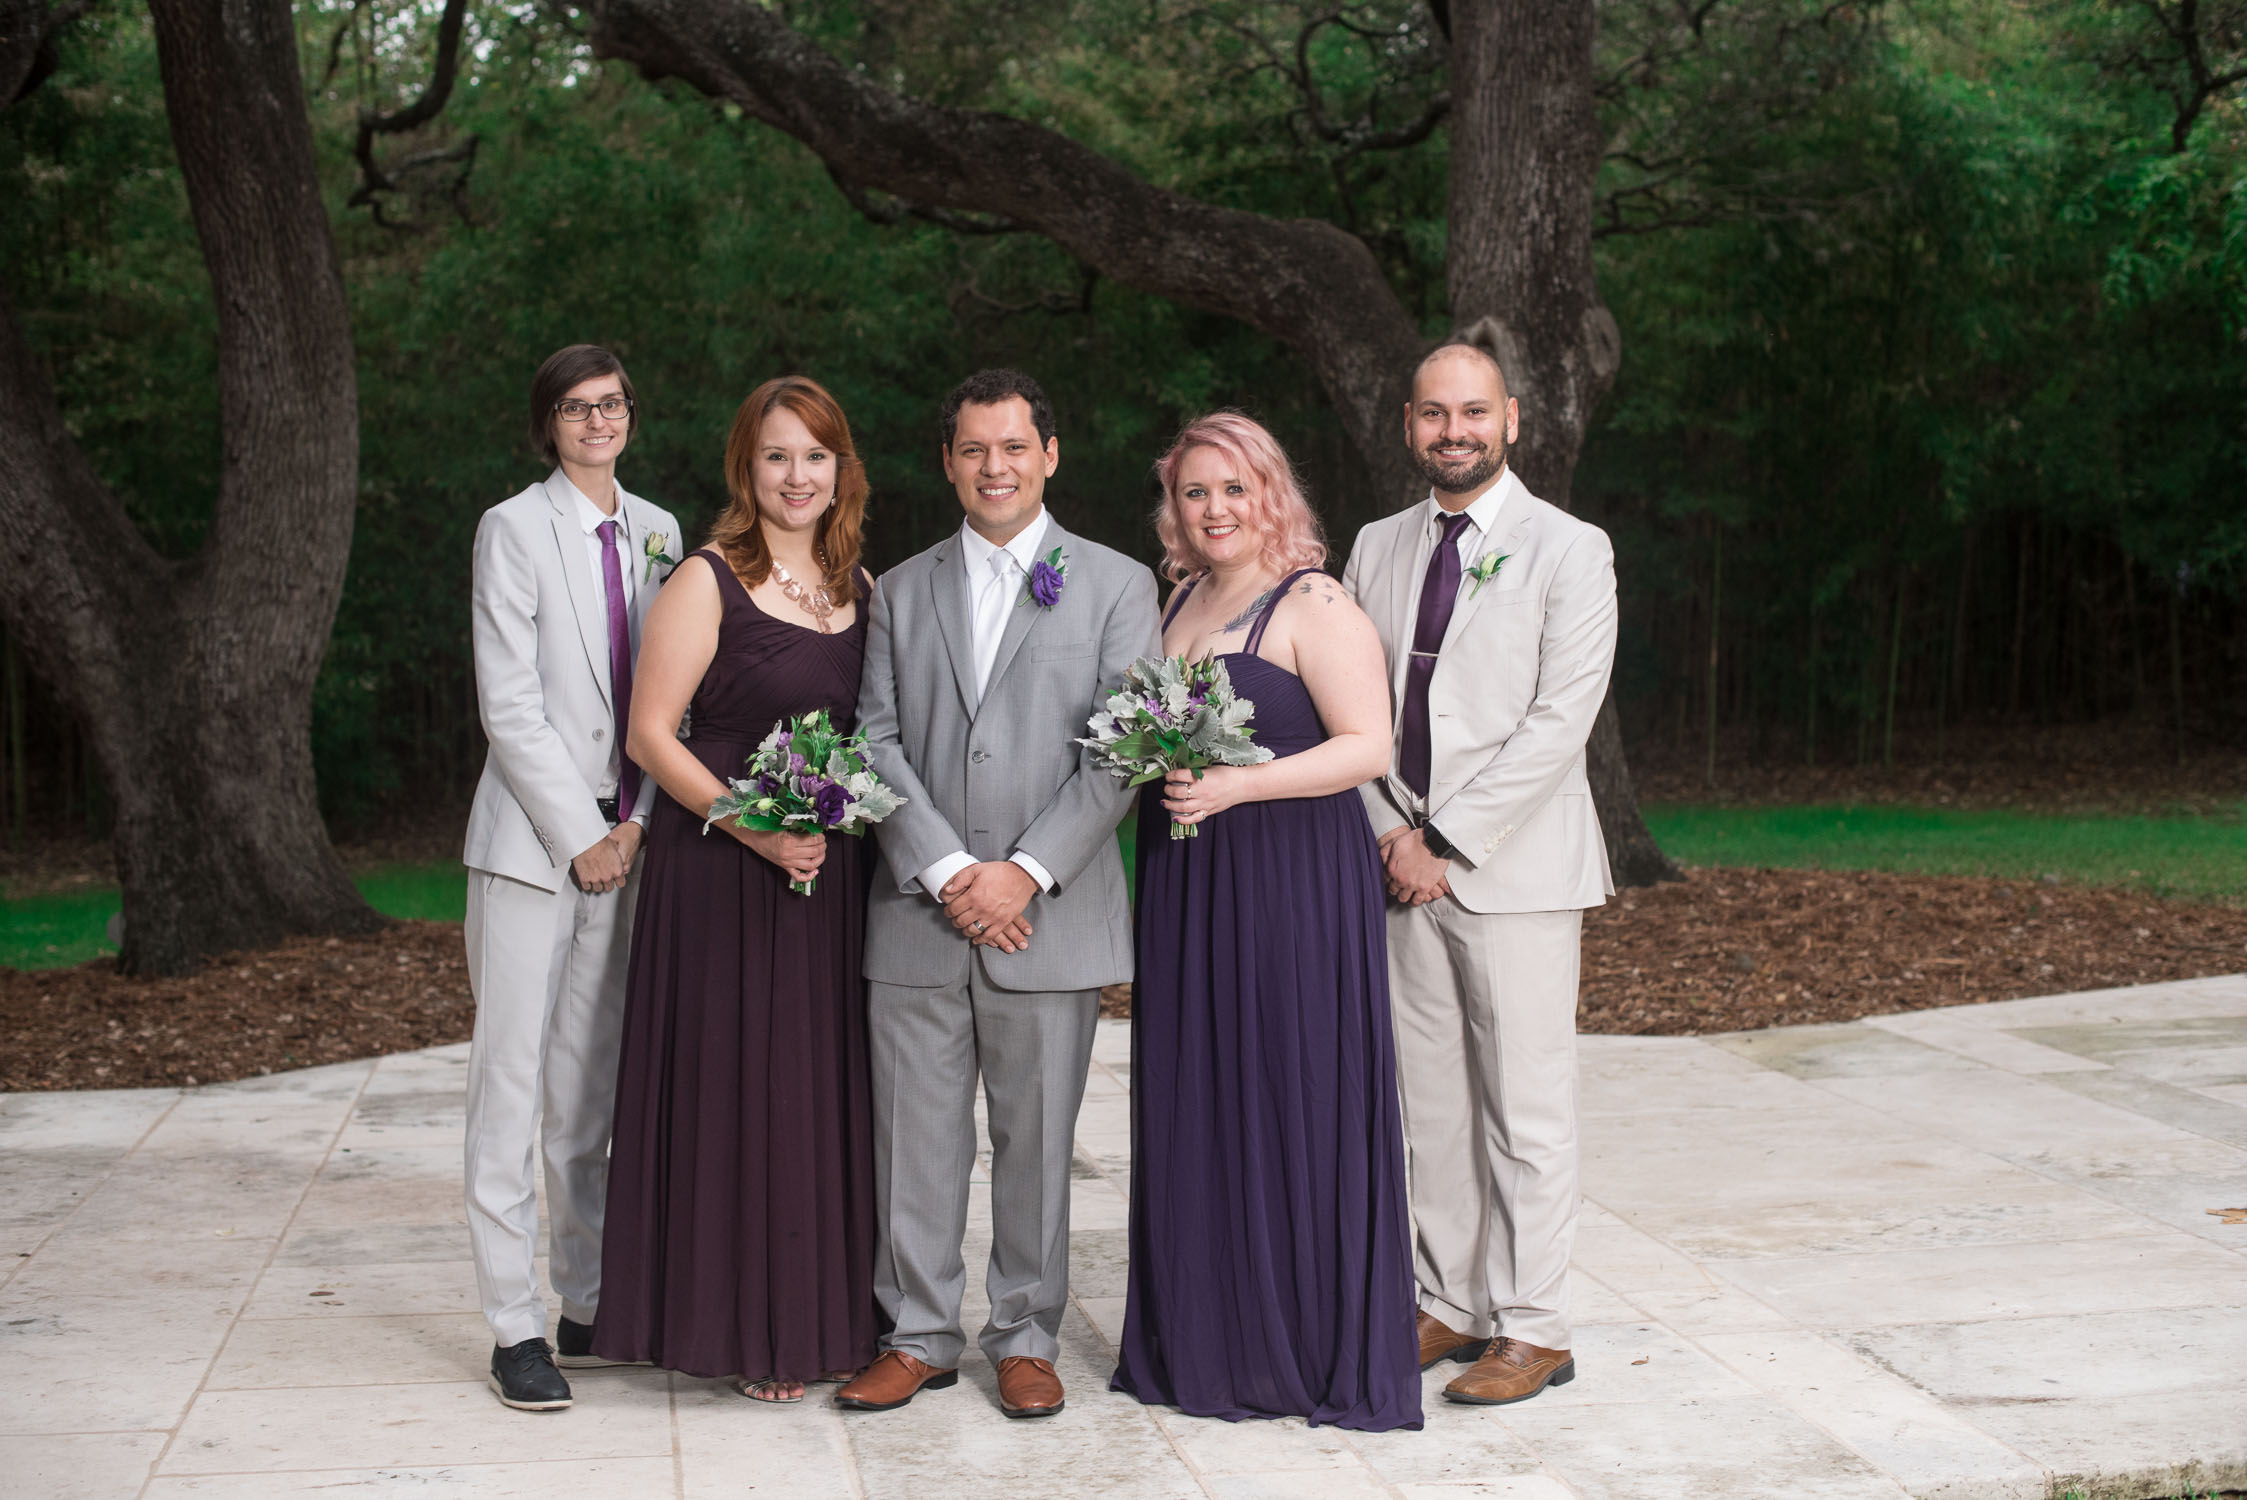 Alex and Austin Wedding Photography at Mercury Hall in Texas-107.jpg